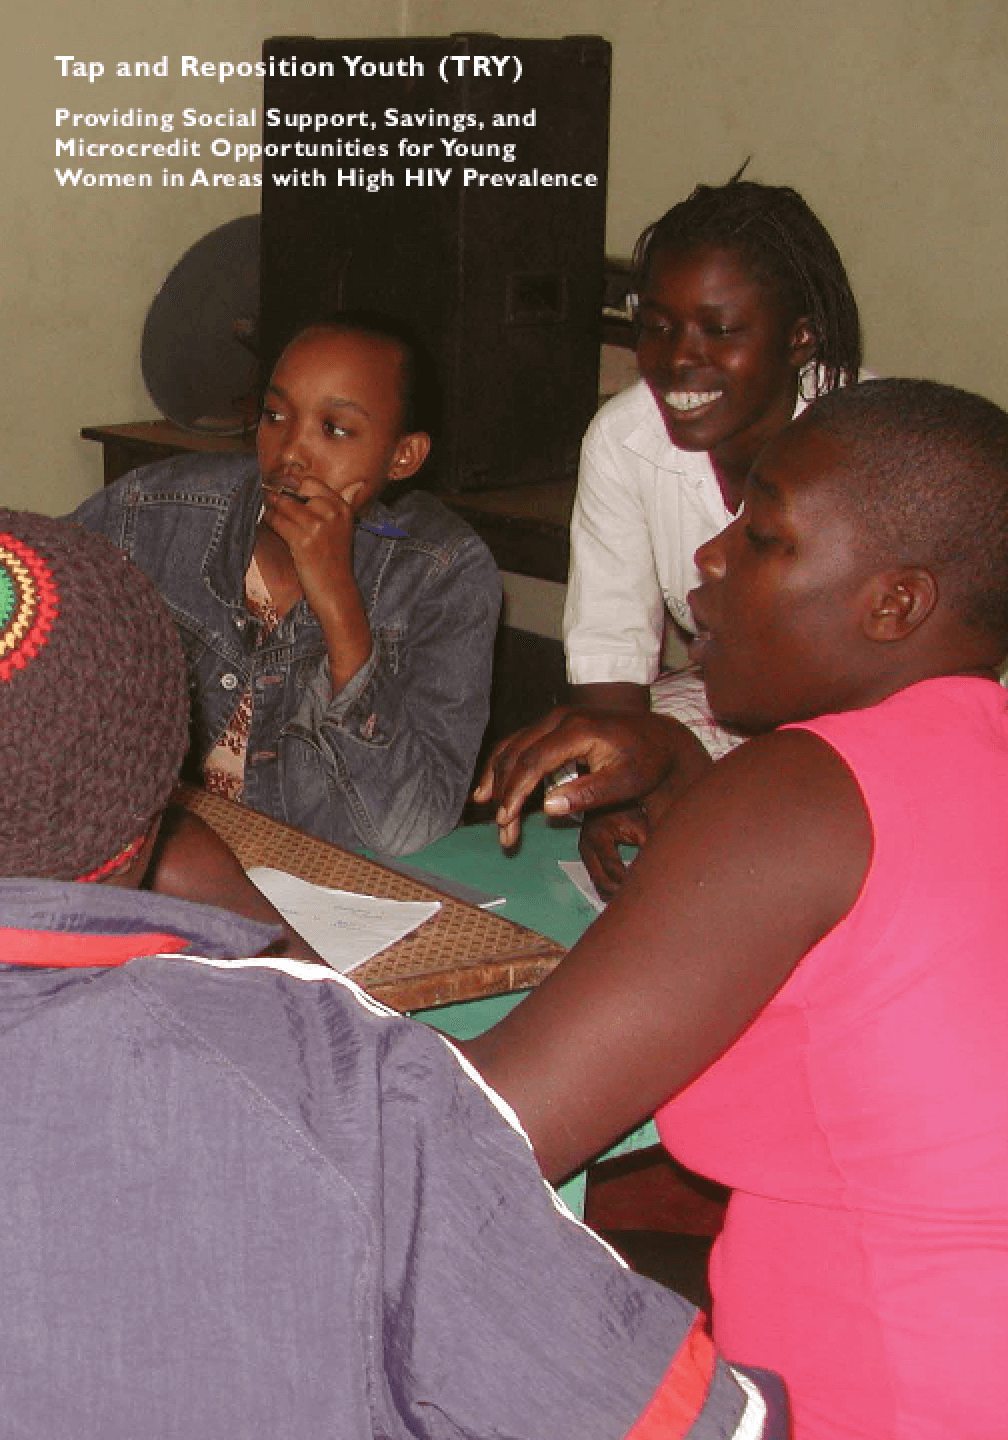 Tap and Reposition Youth (TRY): Providing Social Support Savings and Microcredit Opportunities for Young Women in Areas with High HIV Prevalence